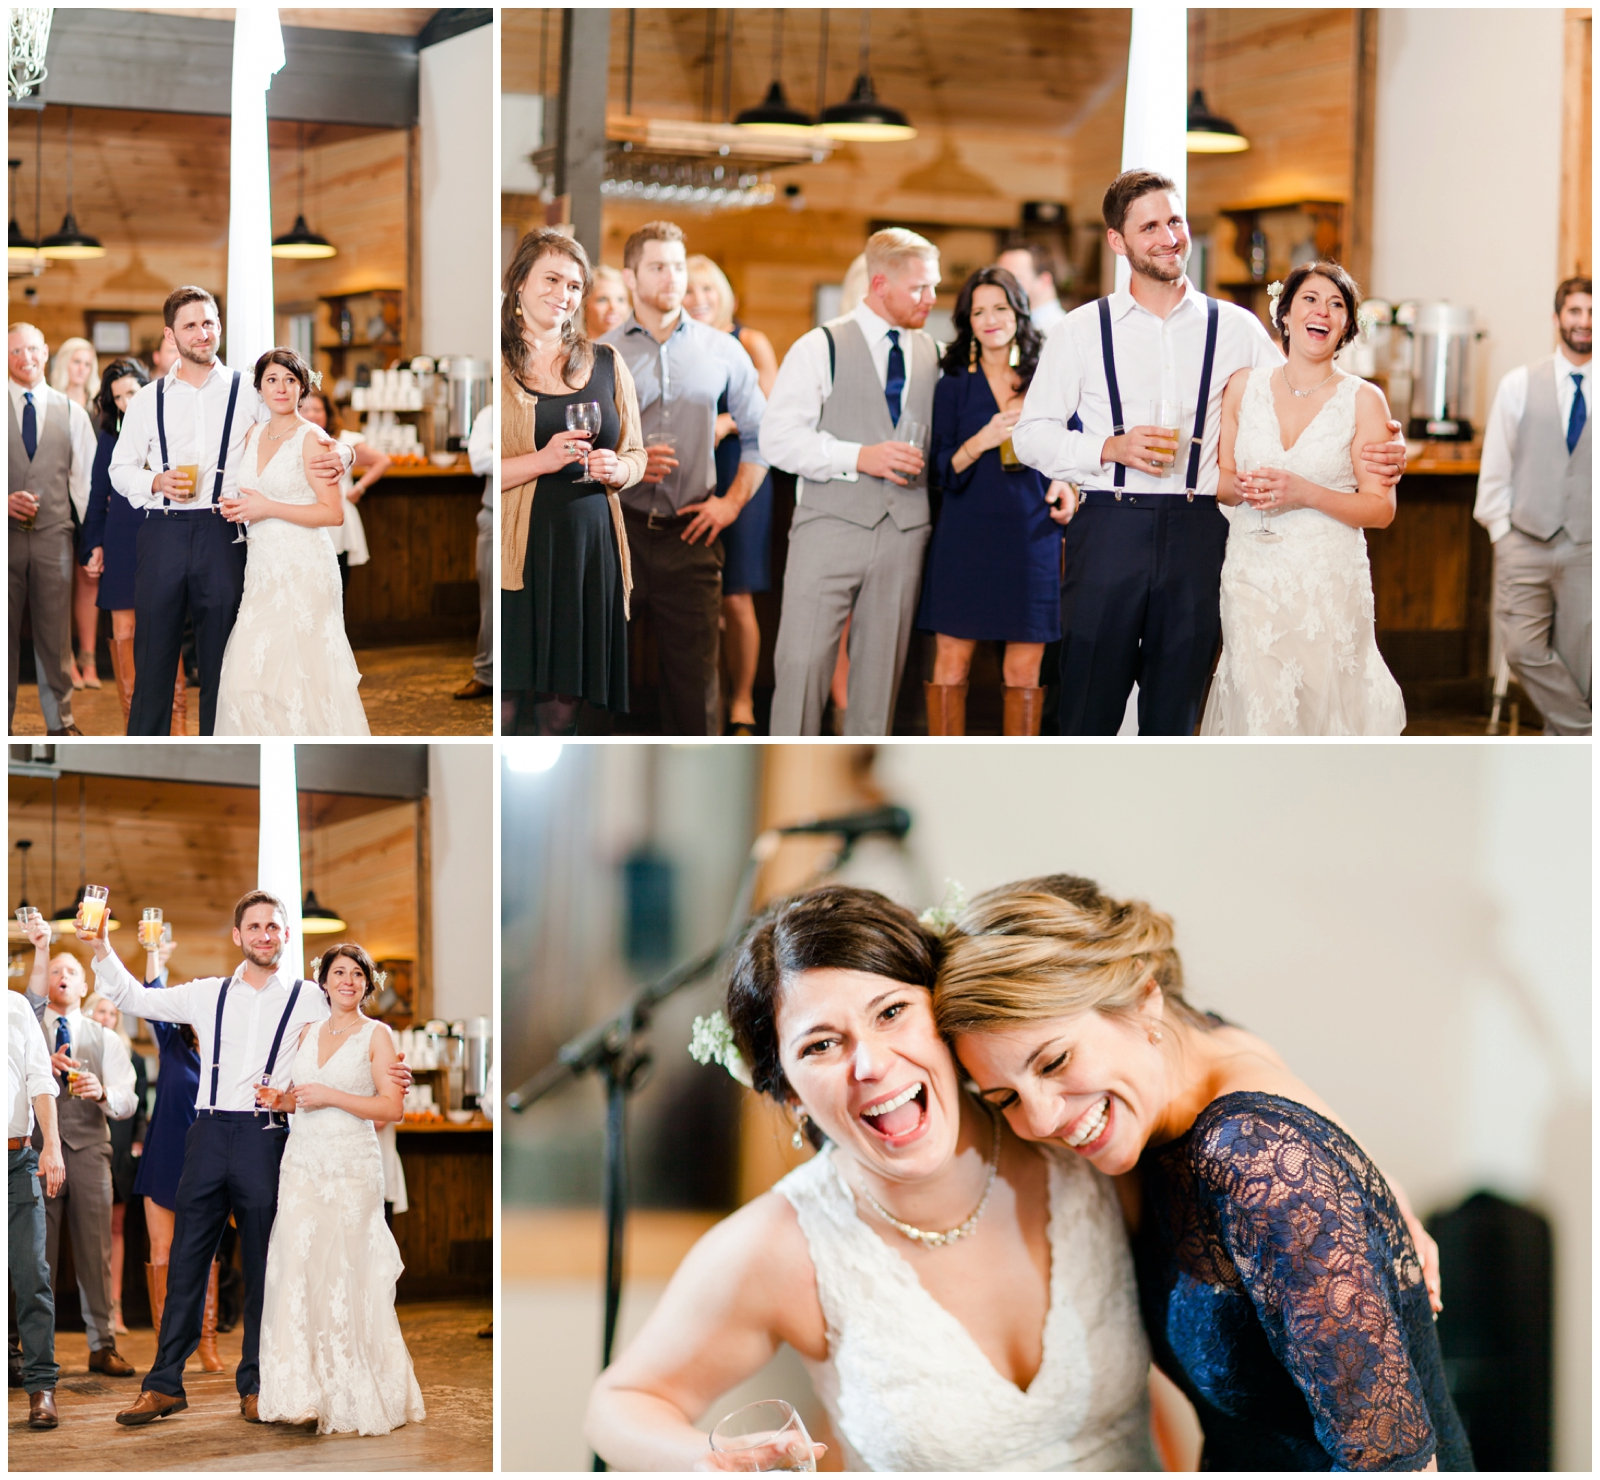 R&G_AtlantaWeddingPhotographer_WhiteOaksBarn_0040